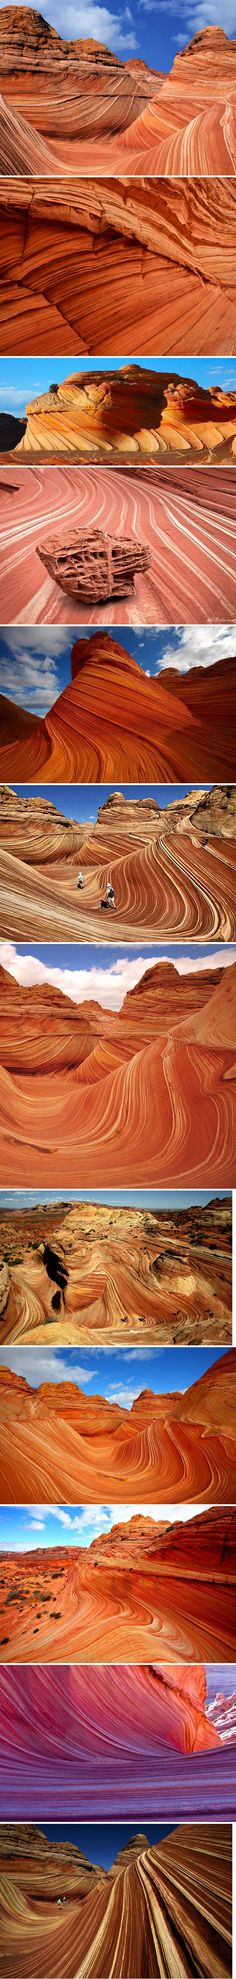 The Wave is a sandstone rock formation  Arizona and Utah